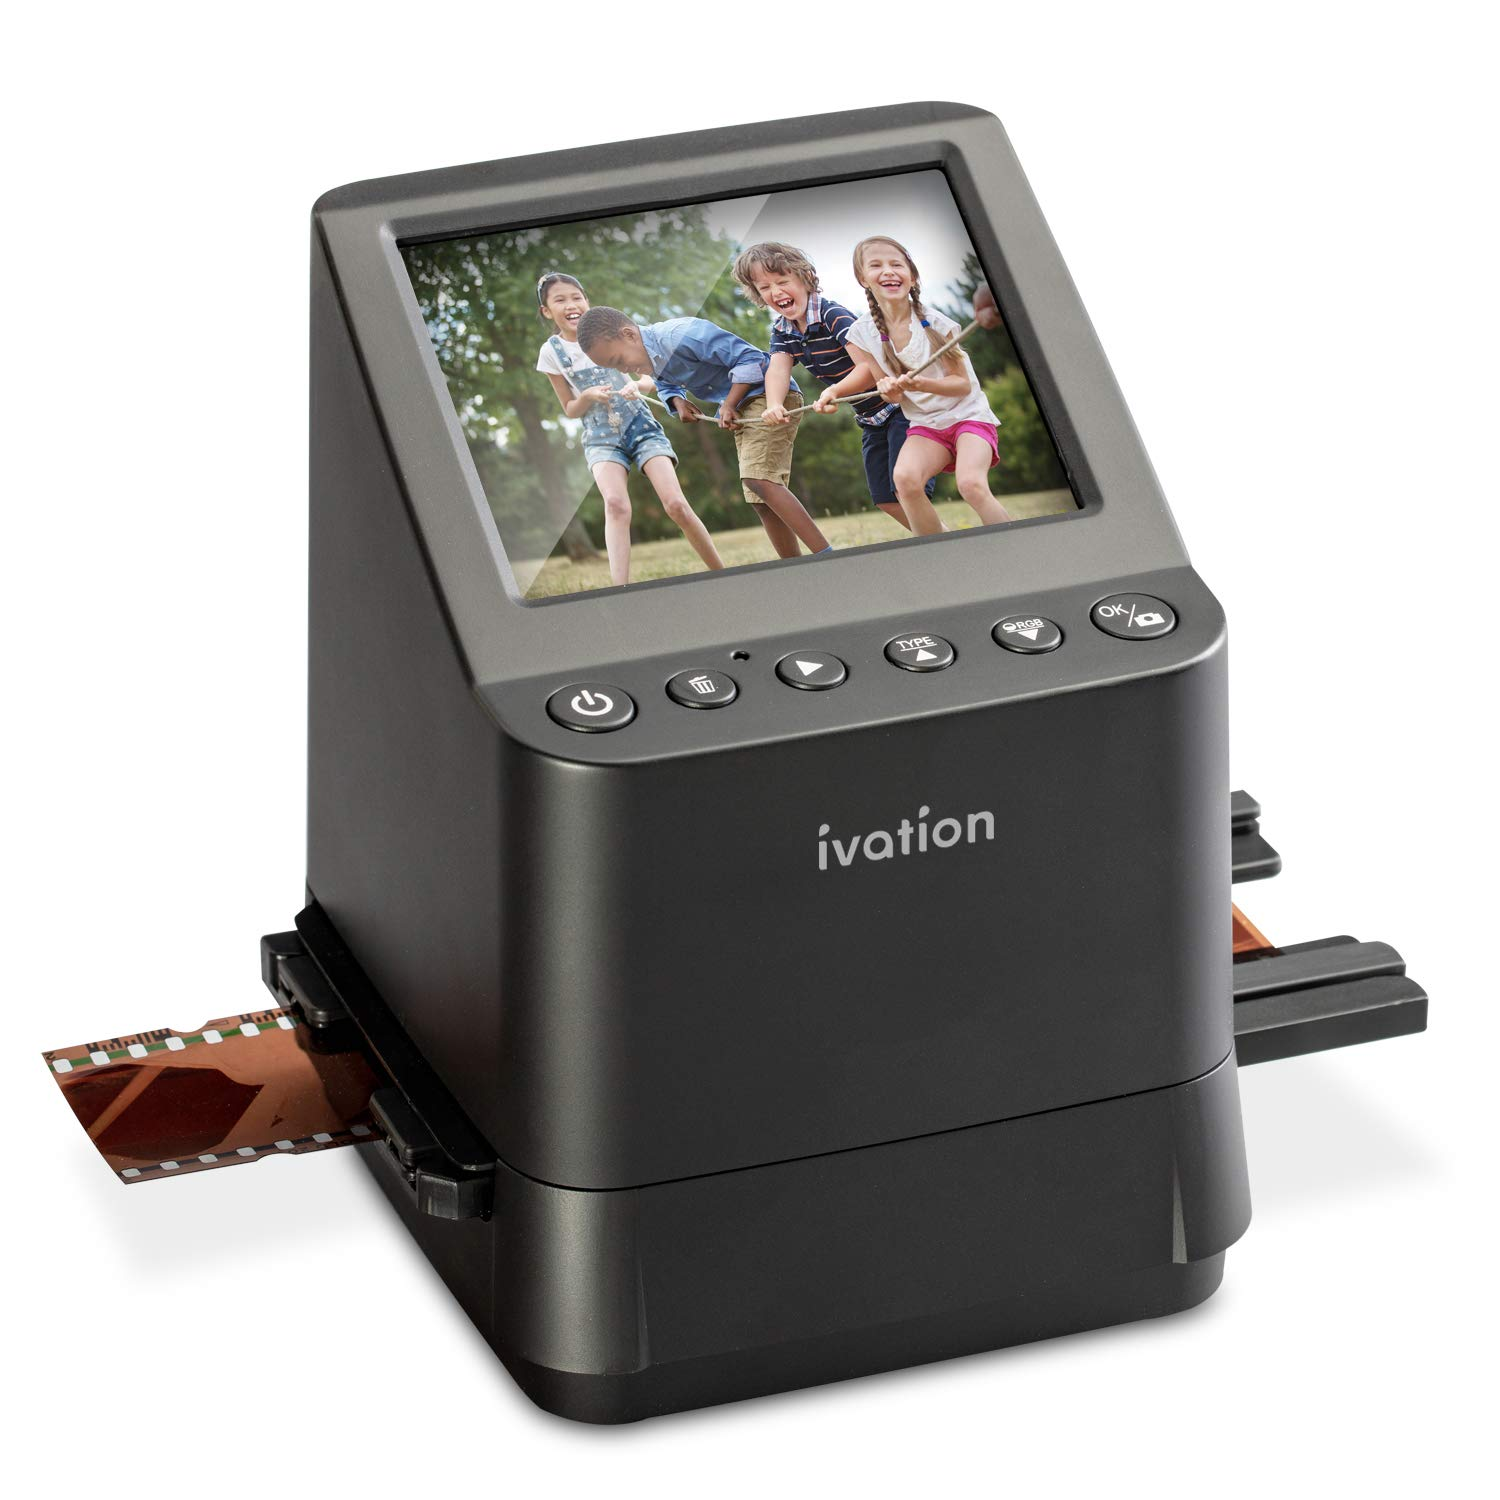 Ivation High Resolution 23MP Film Scanner Converts 135, 110, 126, Black and White, Films Slides and Negatives into Digital Photos, Vibrant 3.5'' 3.5'' Color LCD Display, Easy Quick Load Film Inserts